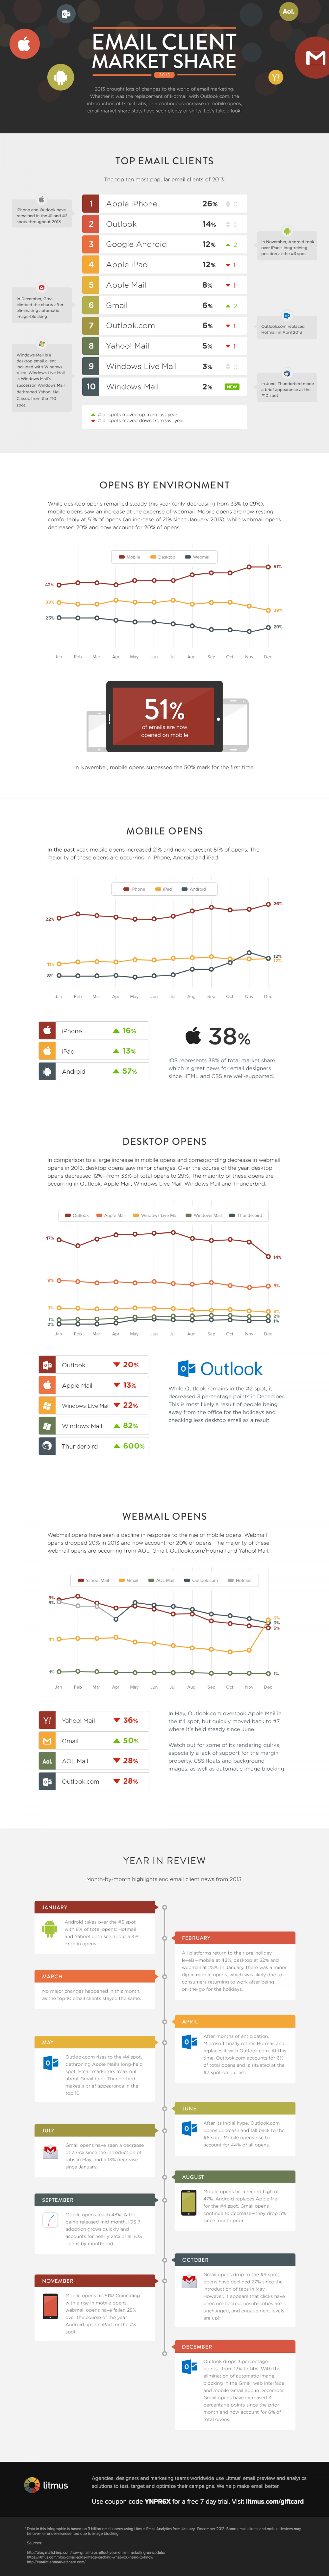 Email Client Market Share: Where People Opened in 2013 Infographic